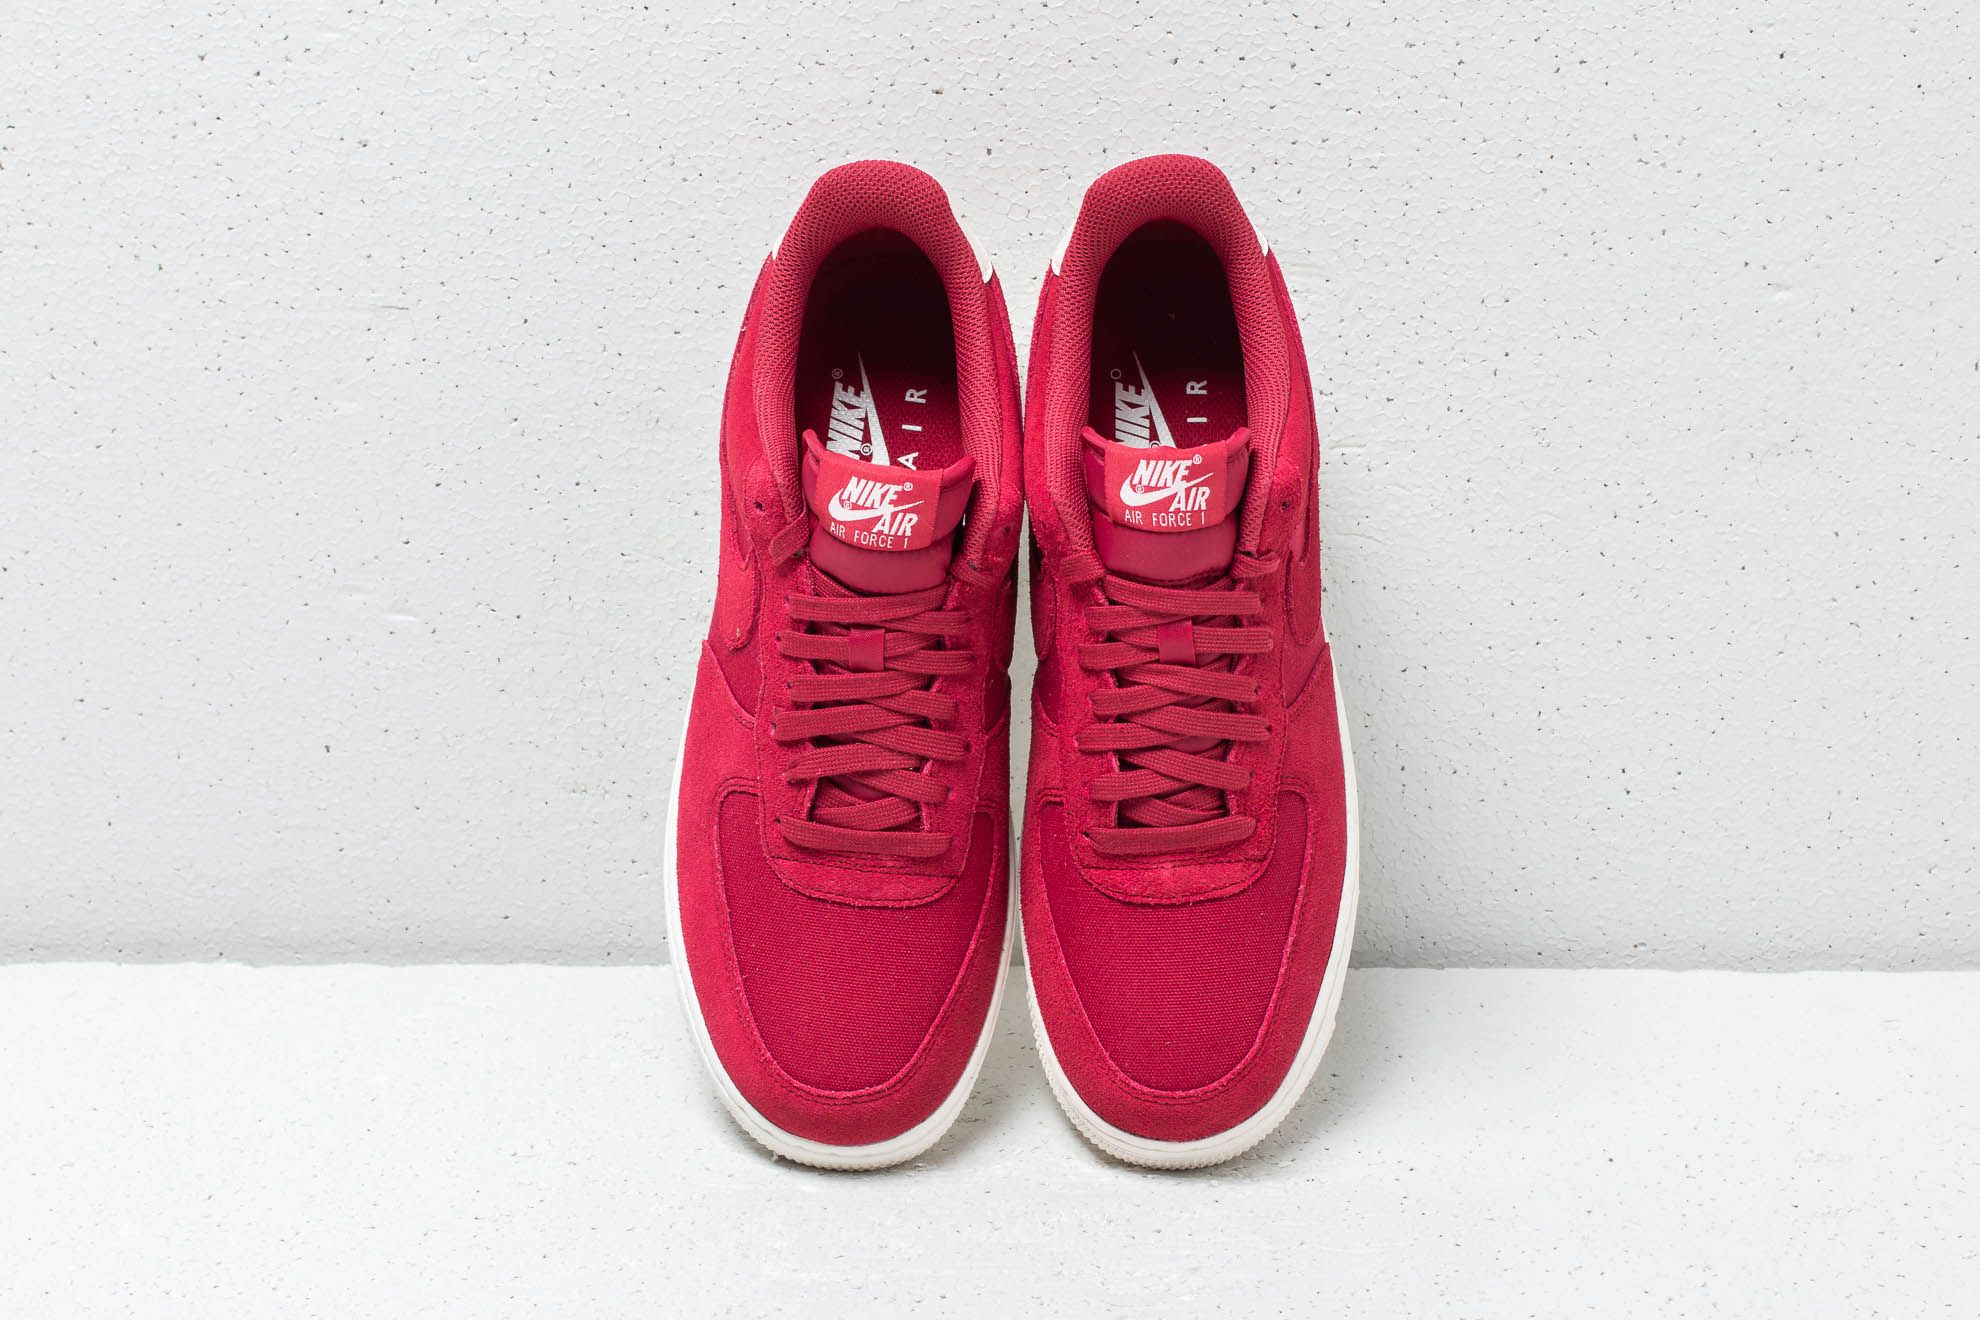 Nike Air Force 1 '07 Suede Red Crush Red Crush Sail | Footshop